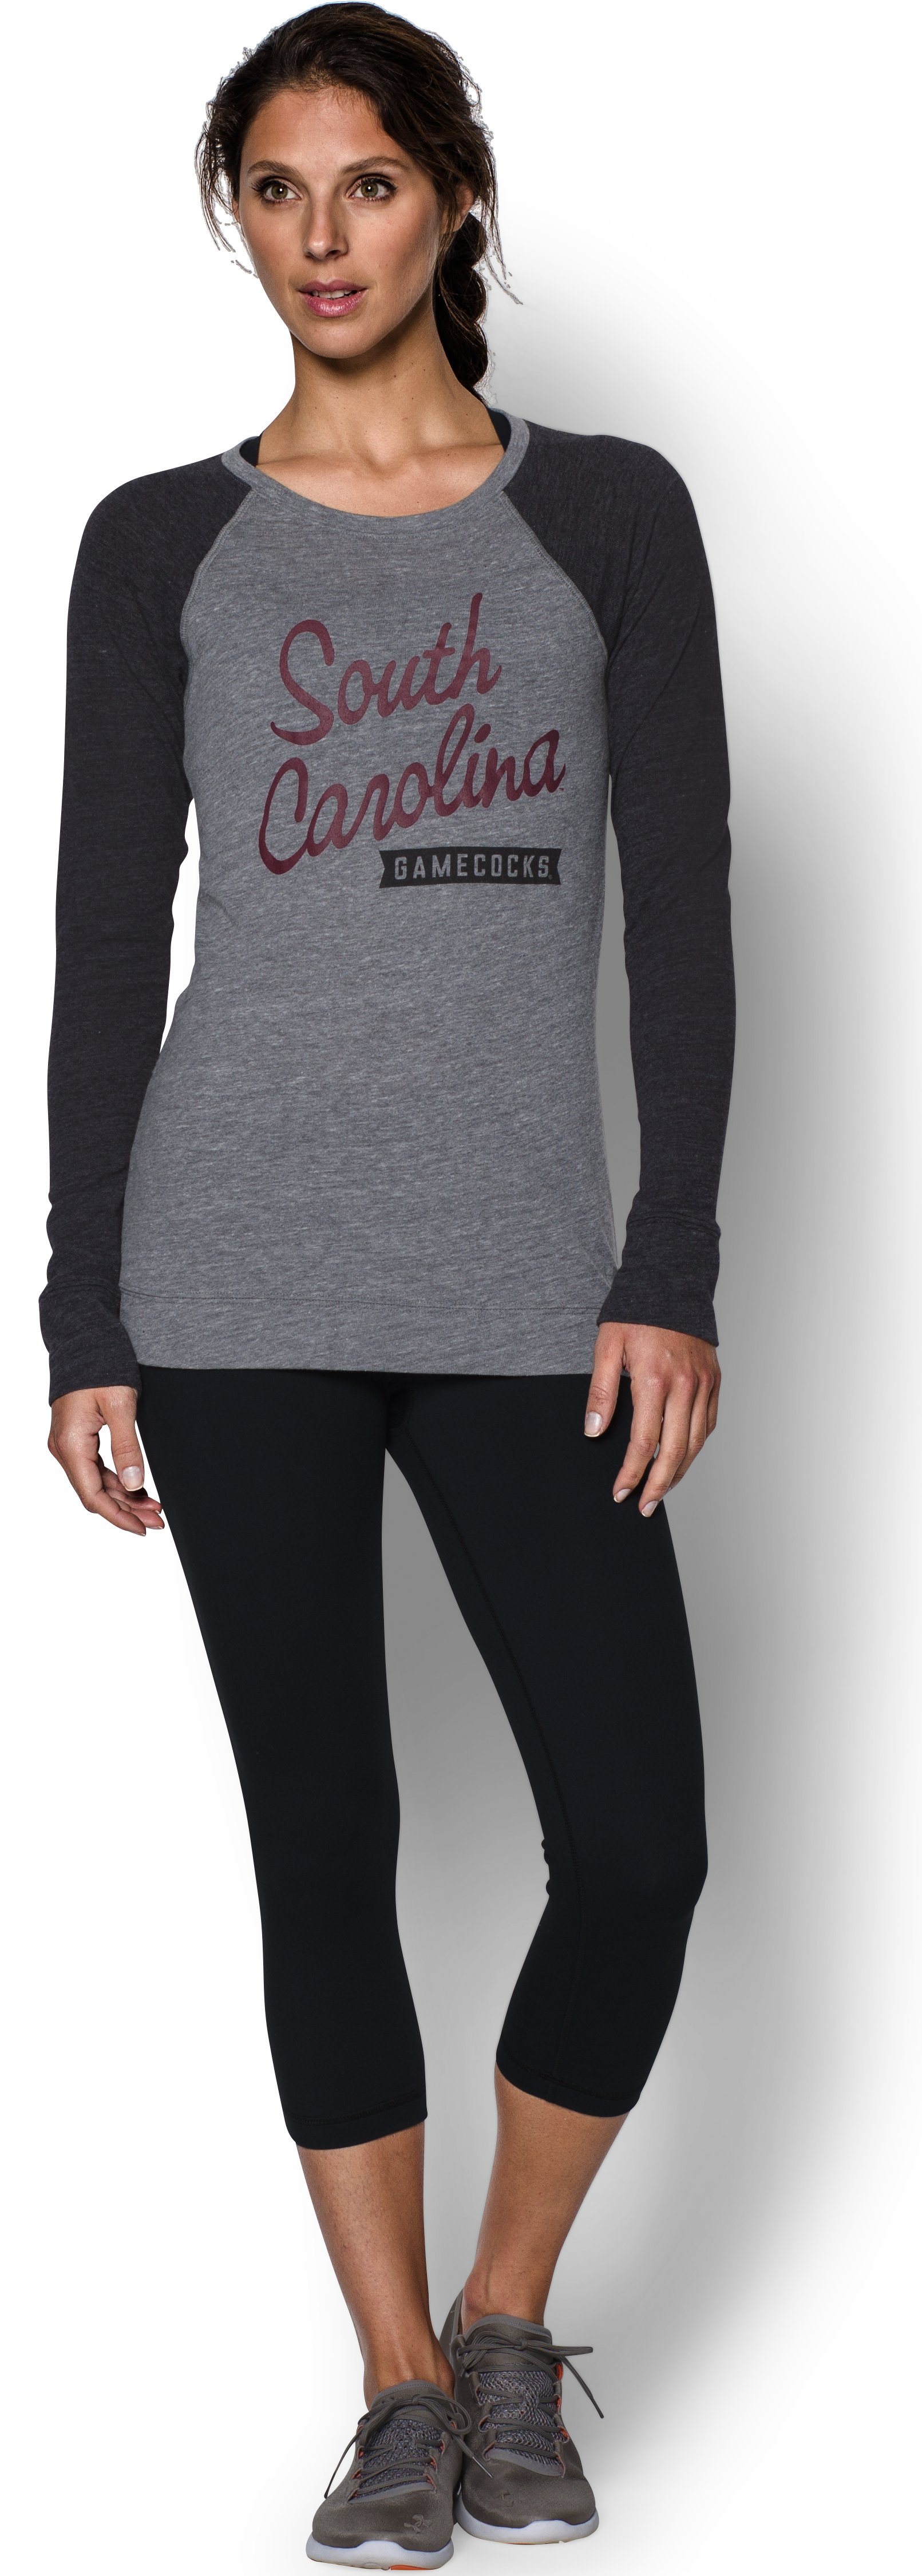 Women's South Carolina UA Tri-Blend Long Sleeve Crew, True Gray Heather, Front